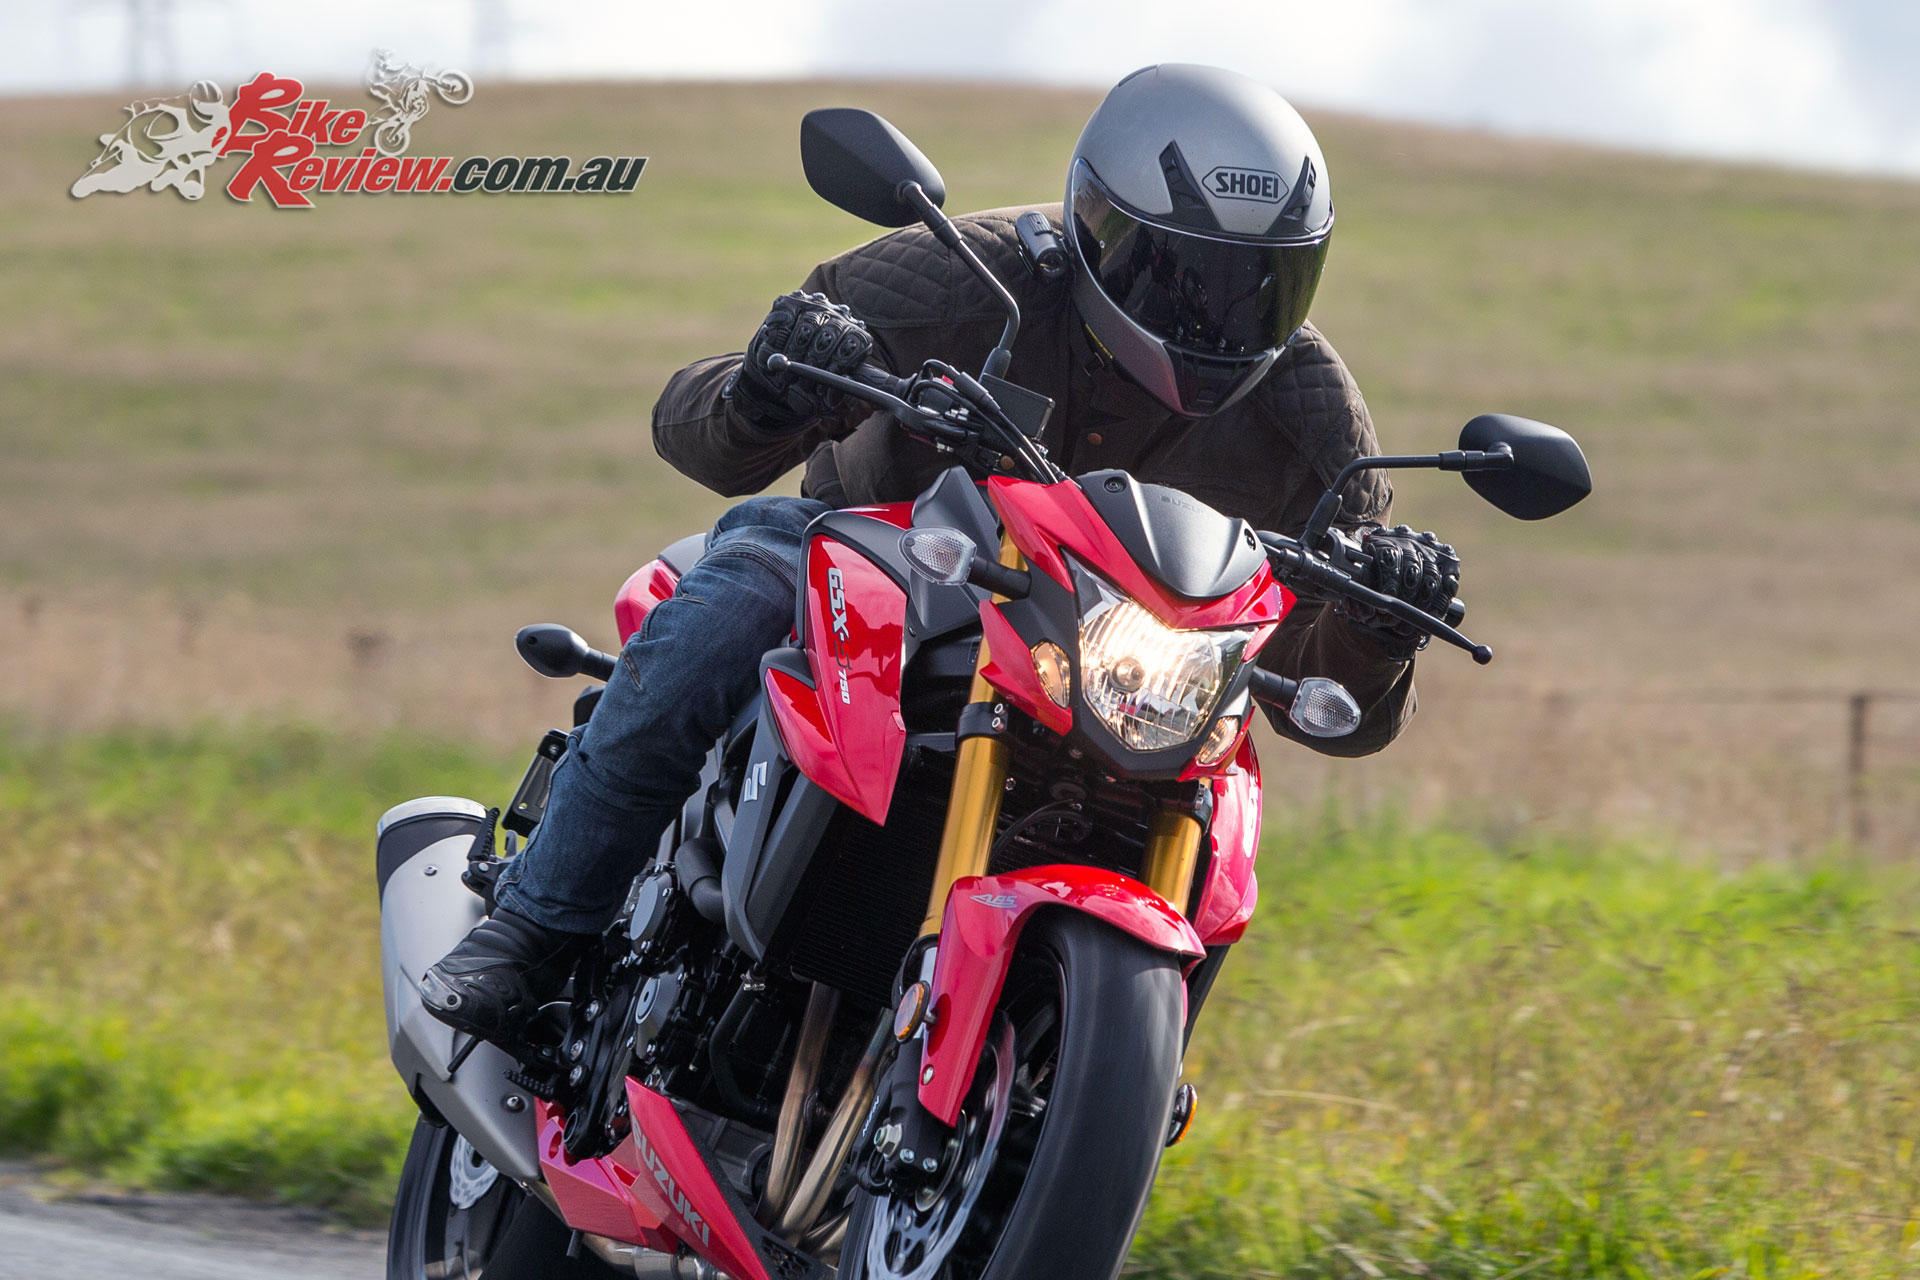 Testing out the Shoei RYD helmet at the recent Suzuki GSX-S750 launch